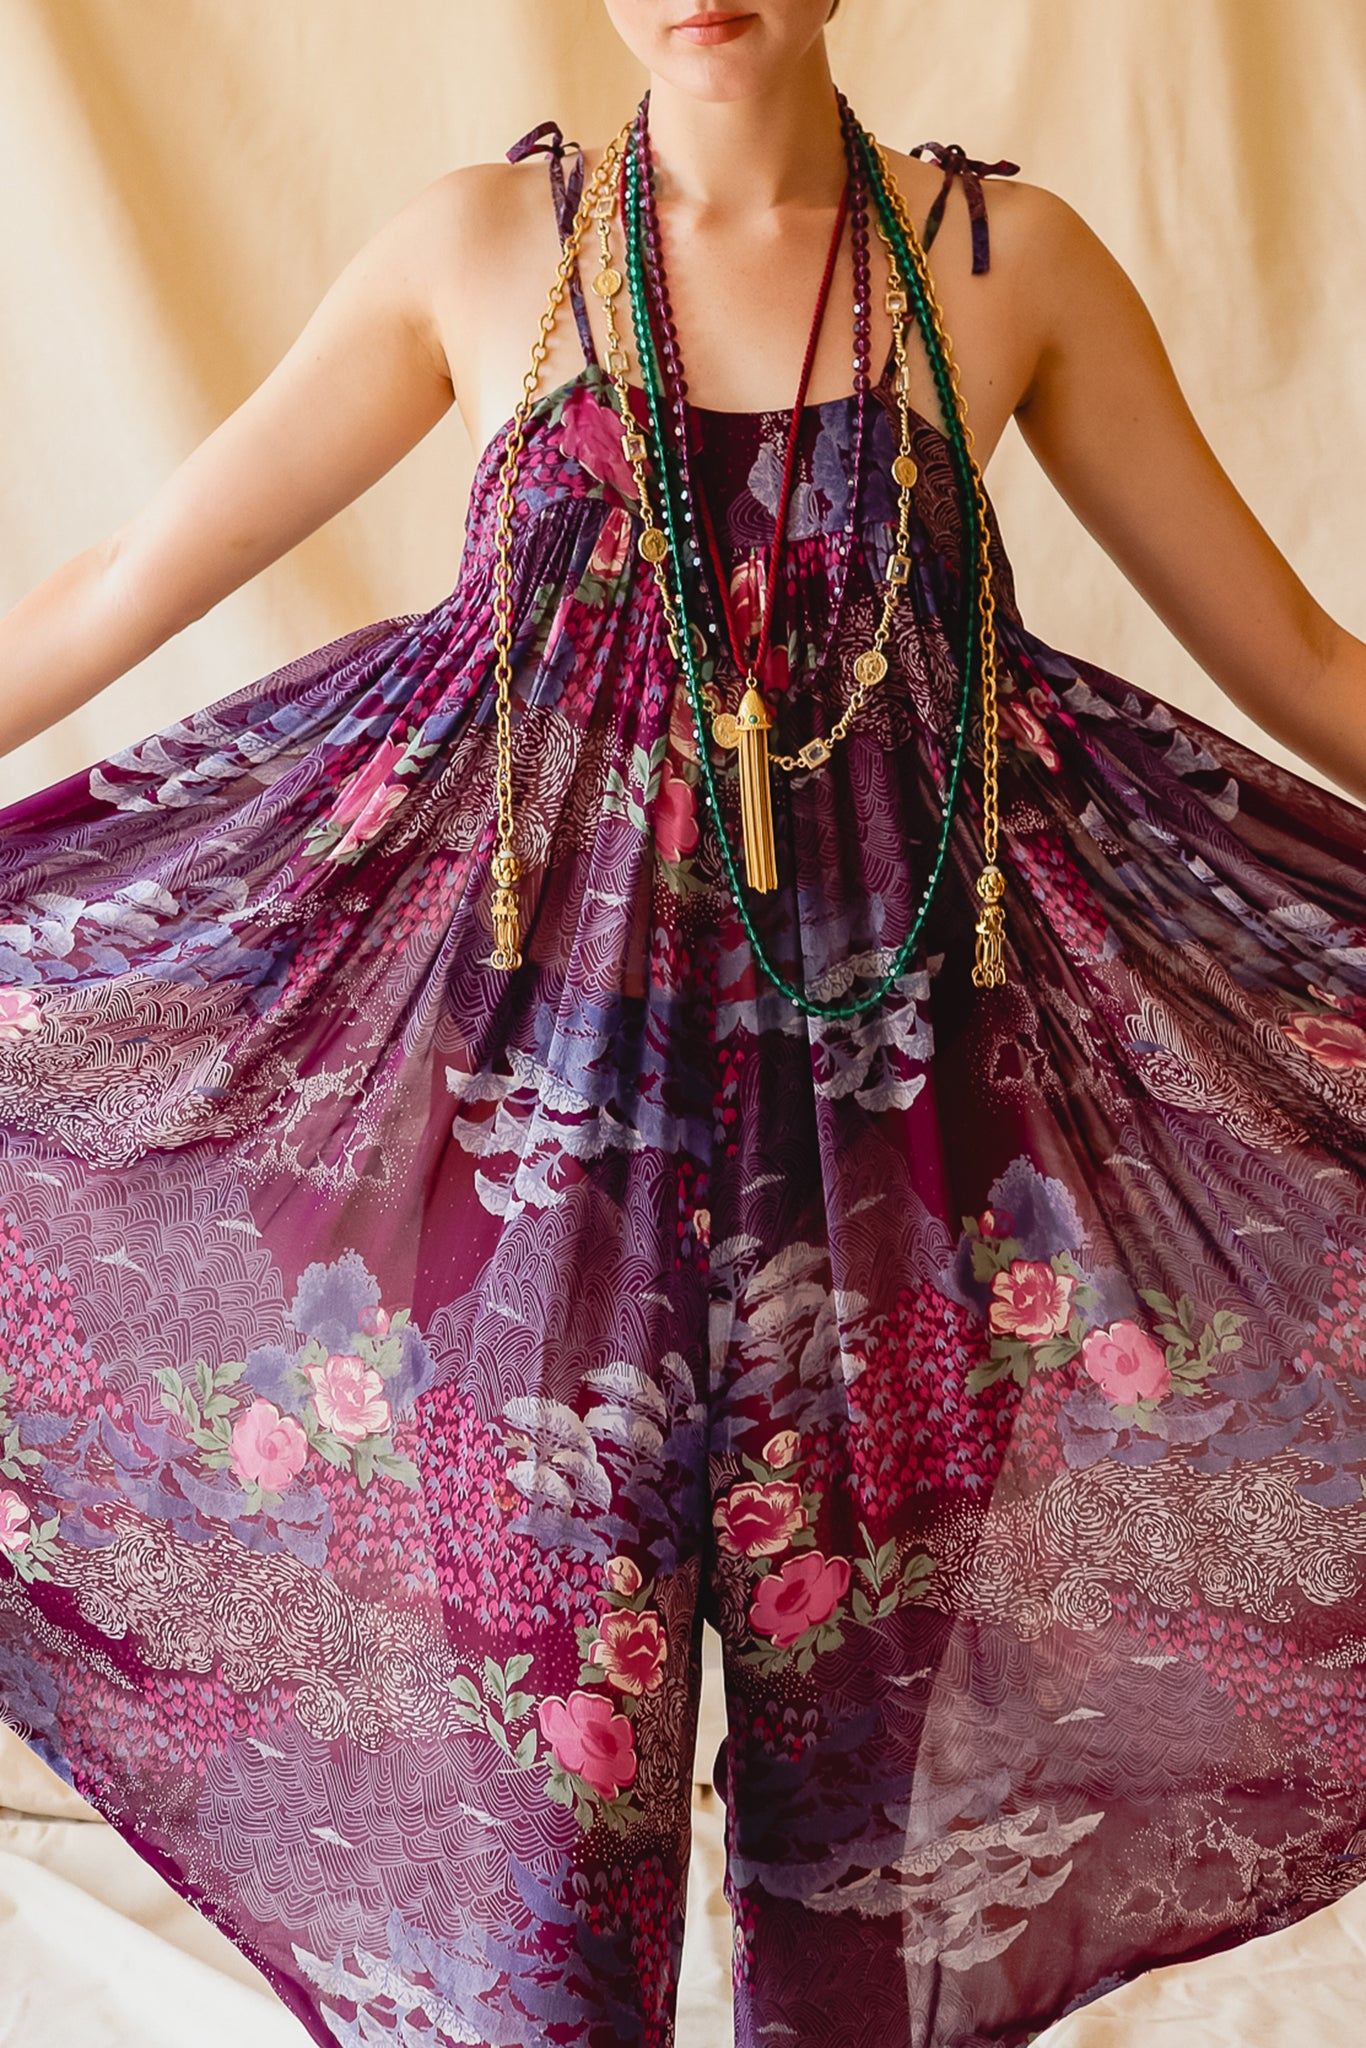 Recess Vintage Consignment LA Girl in Adini Sheer Purple Harem Jumpsuit and necklaces